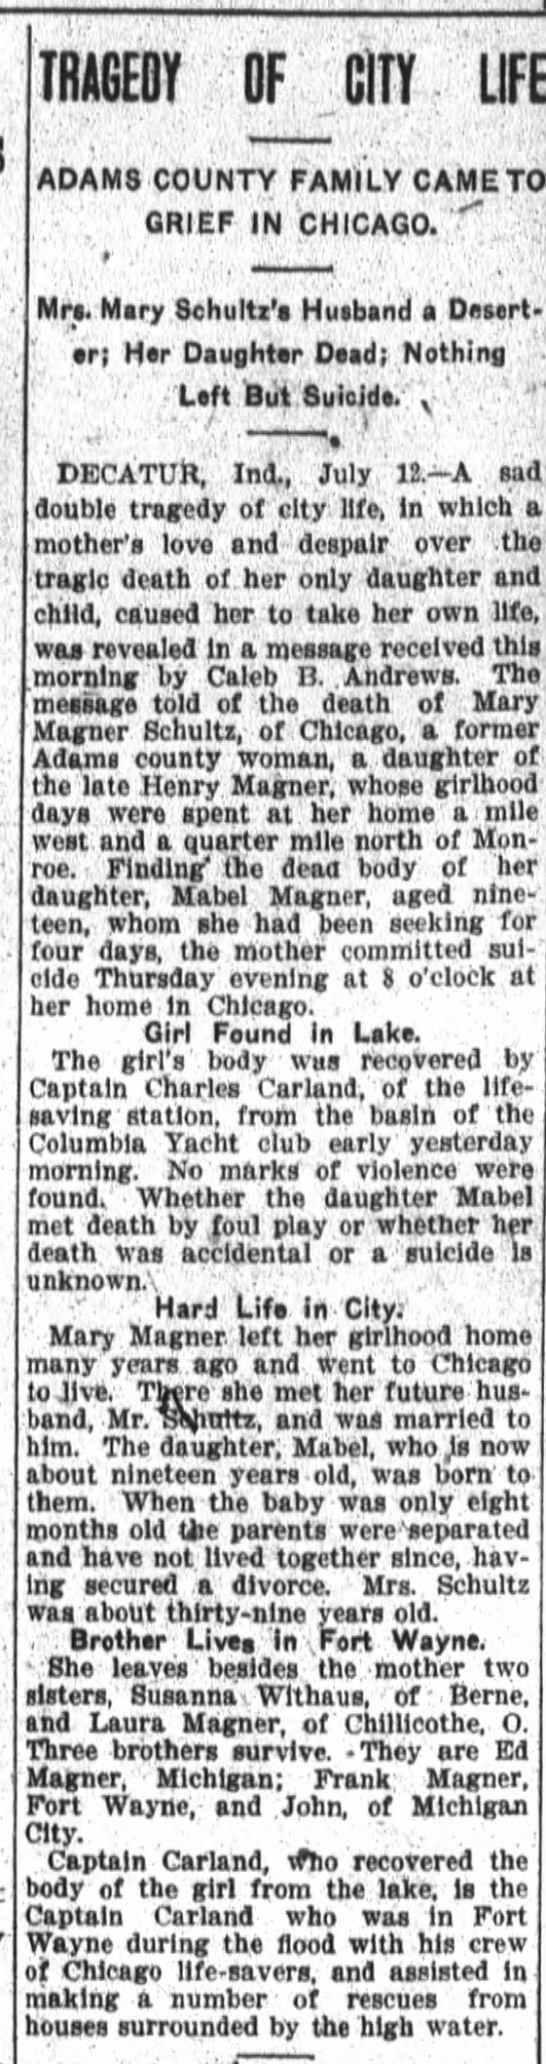 Suicide of Mary Magner after death of daughter Mabel Magner. - TRAGEDY OF CITY LIFE ADAM8 COUNTY FAMILY CAME...